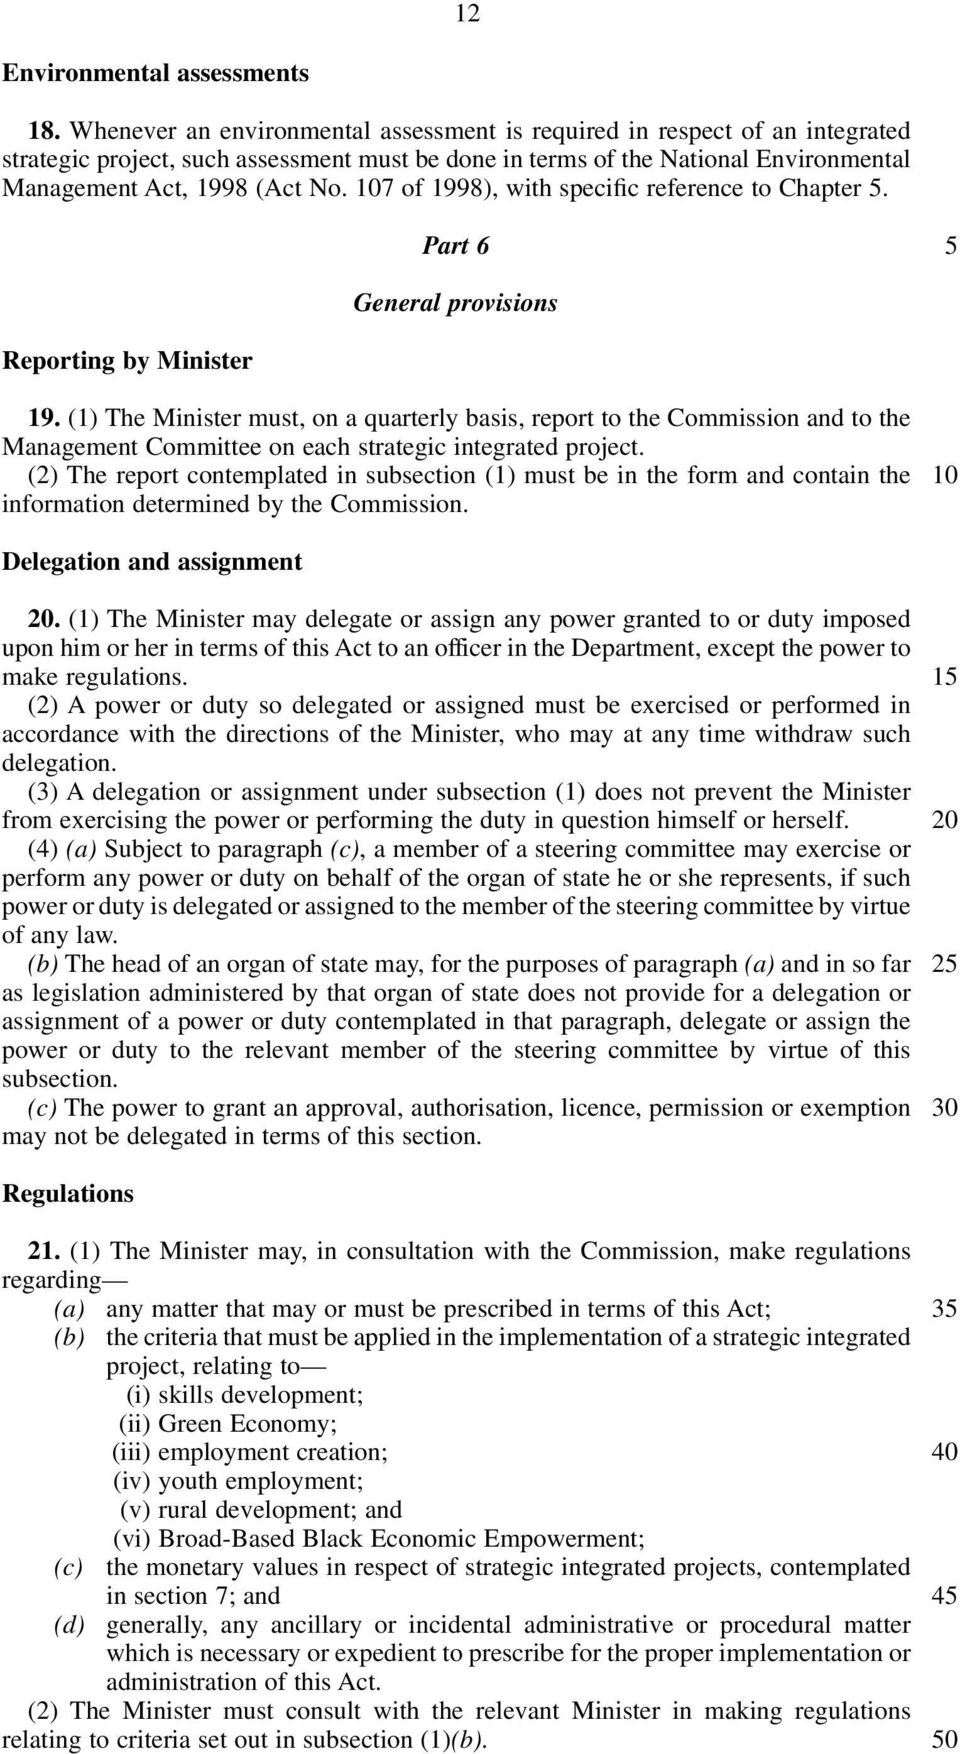 7 of 1998), with specific reference to Chapter. Part 6 General provisions Reporting by Minister 19.